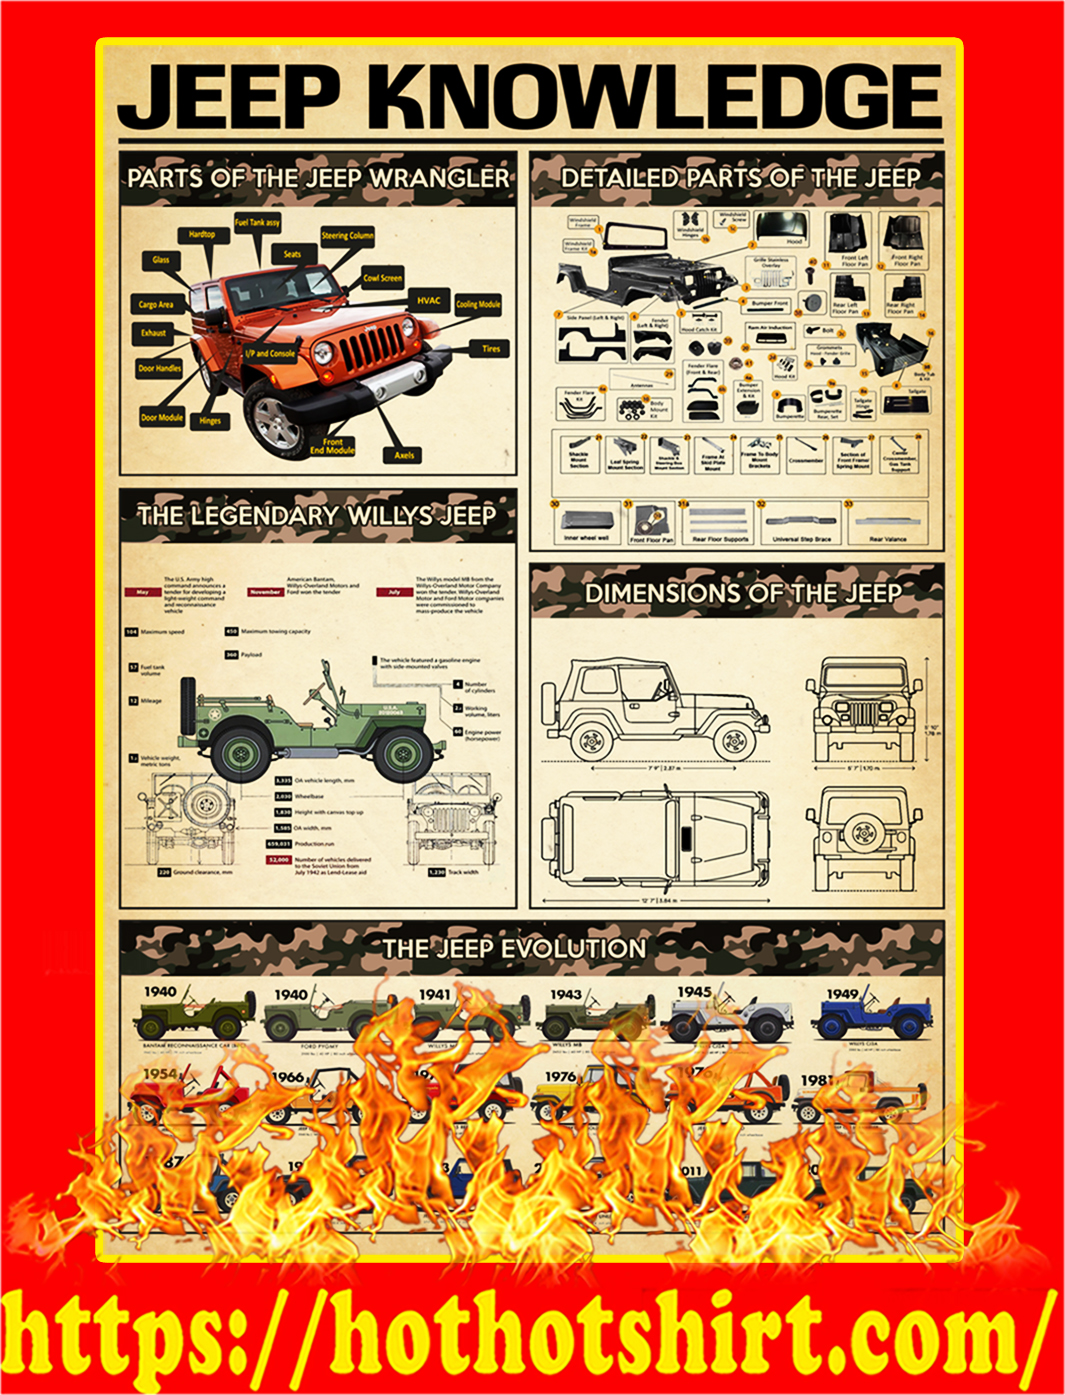 Jeep Knowledge poster - A1